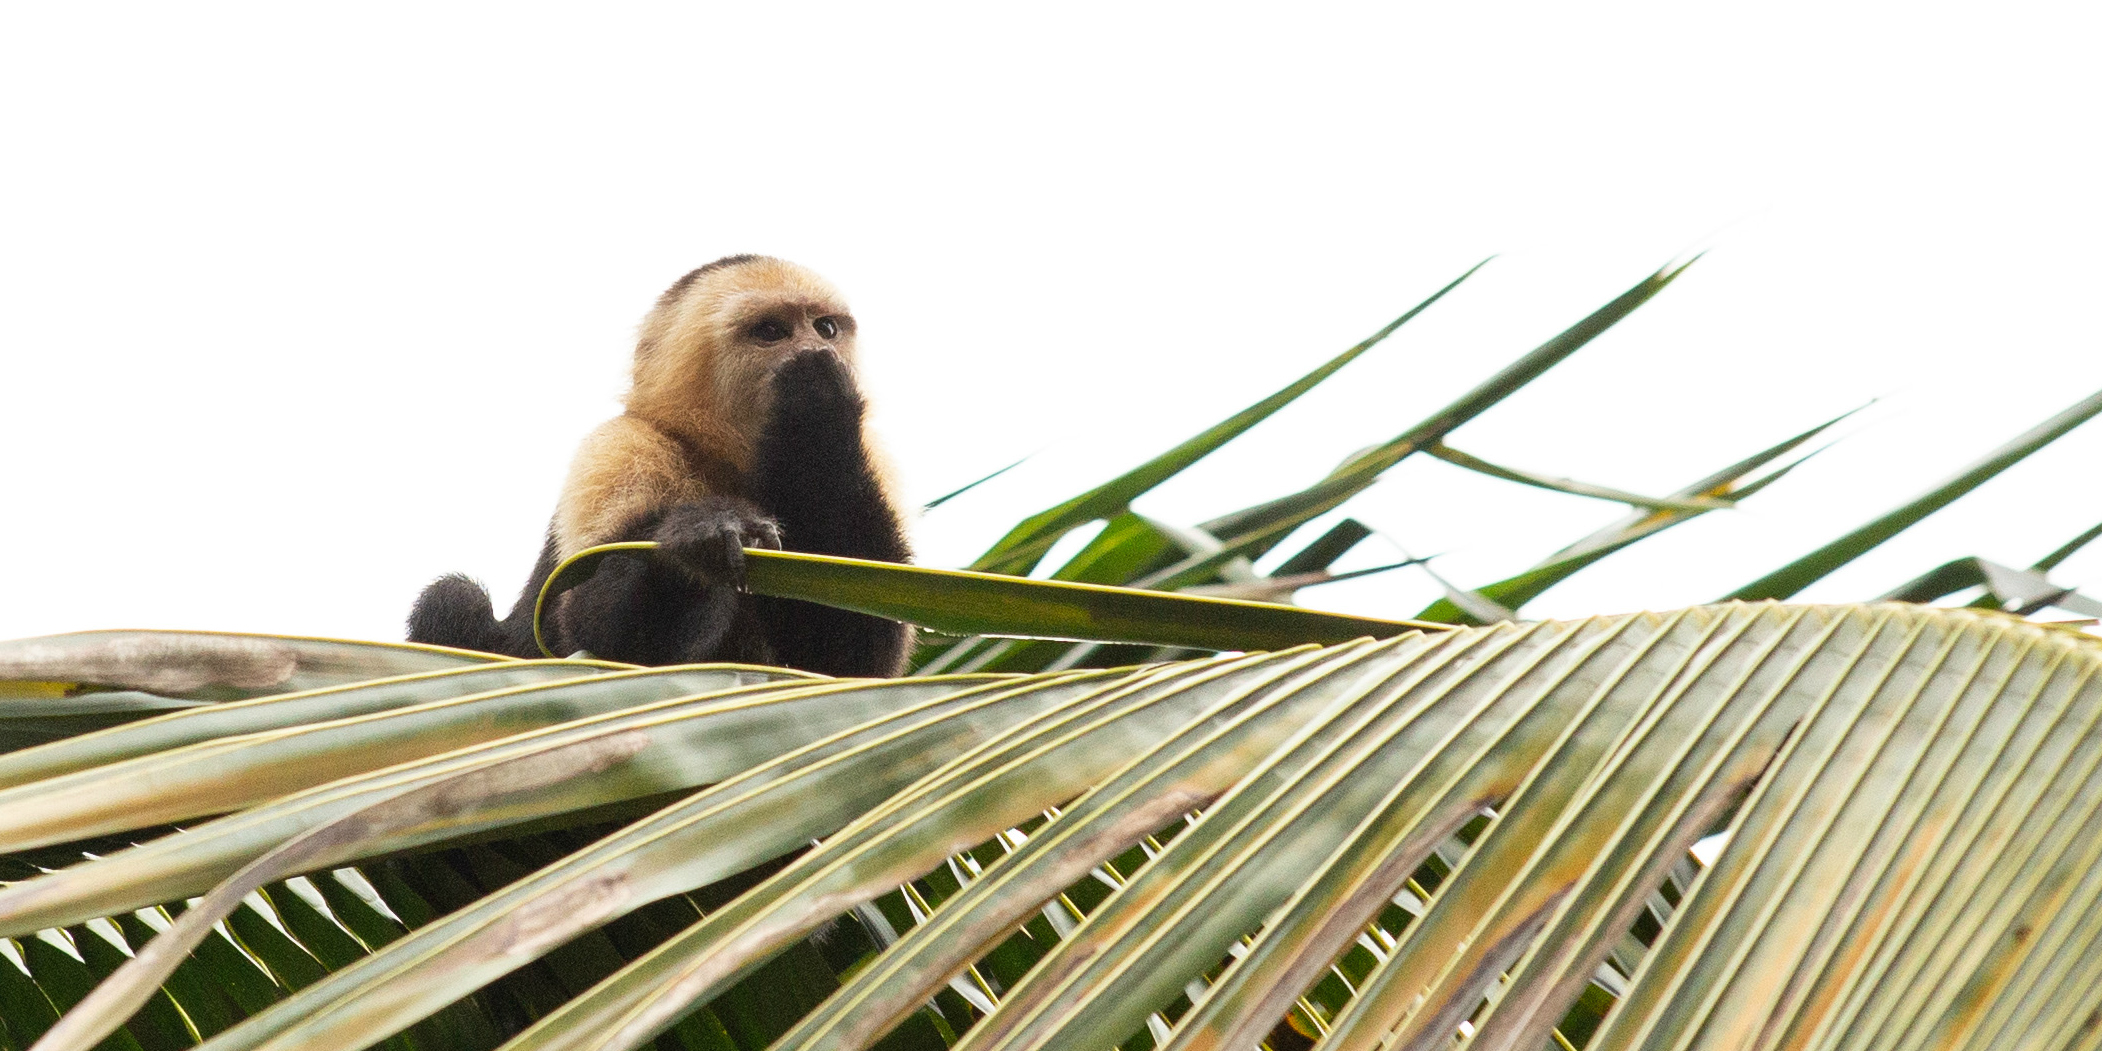 This monkey is one of the many species of animal GVI volunteers might encounter while volunteering in Costa Rica.